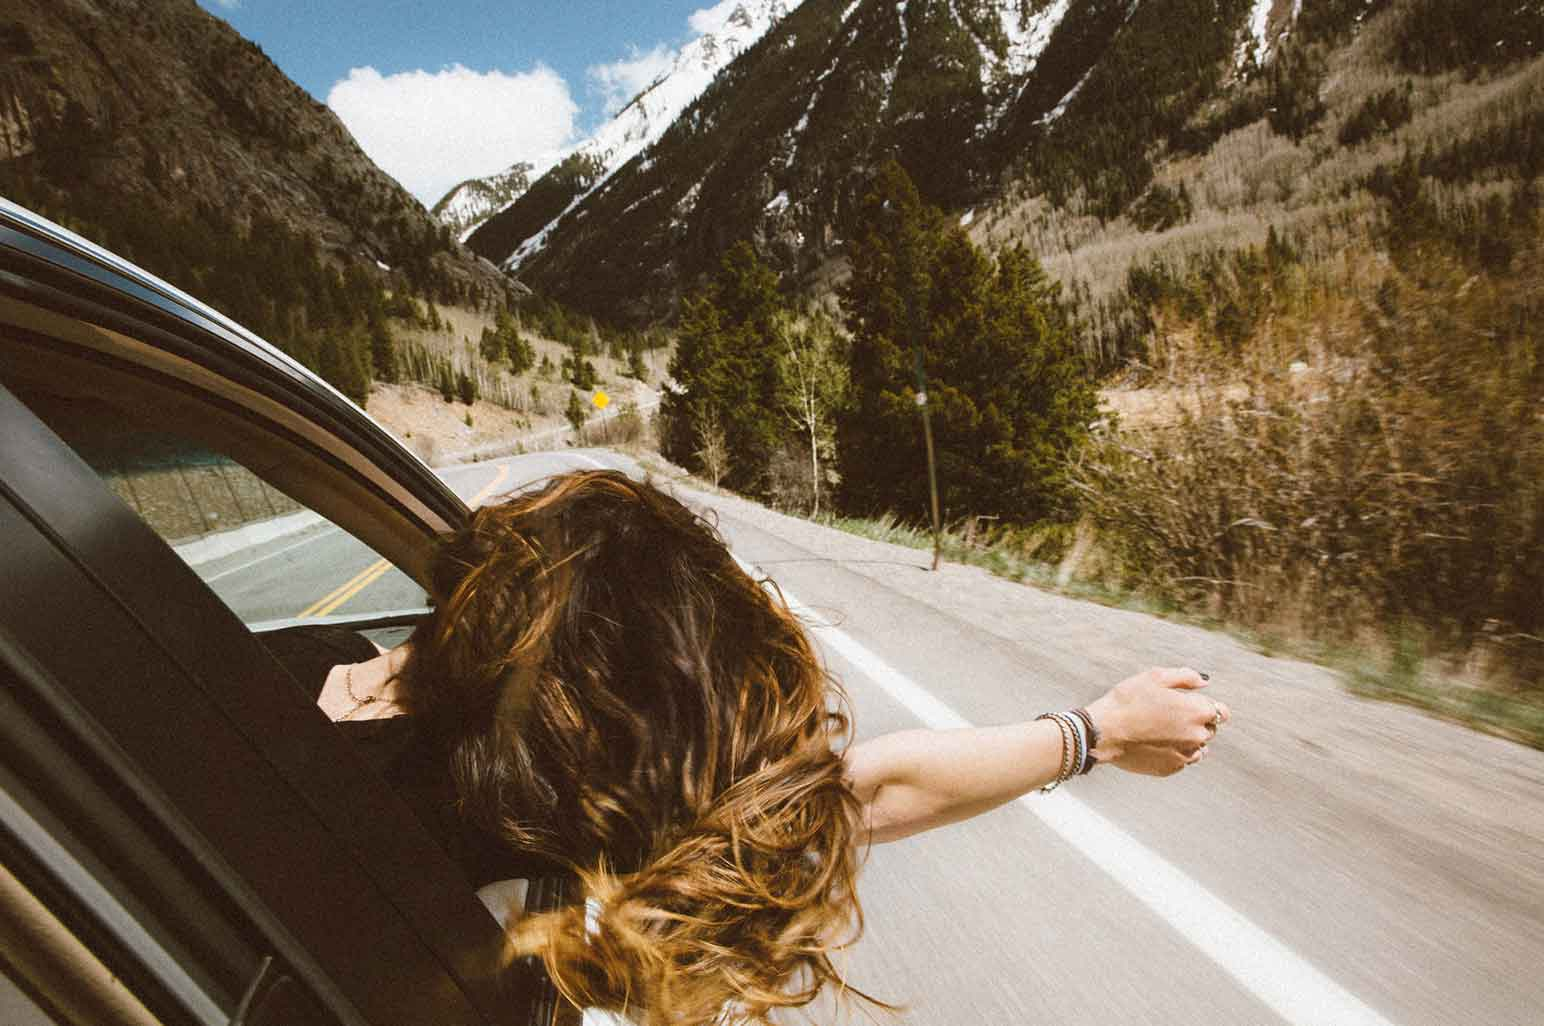 Getting a Car To Help You Travel Better? Here Are Some Things You Should Consider